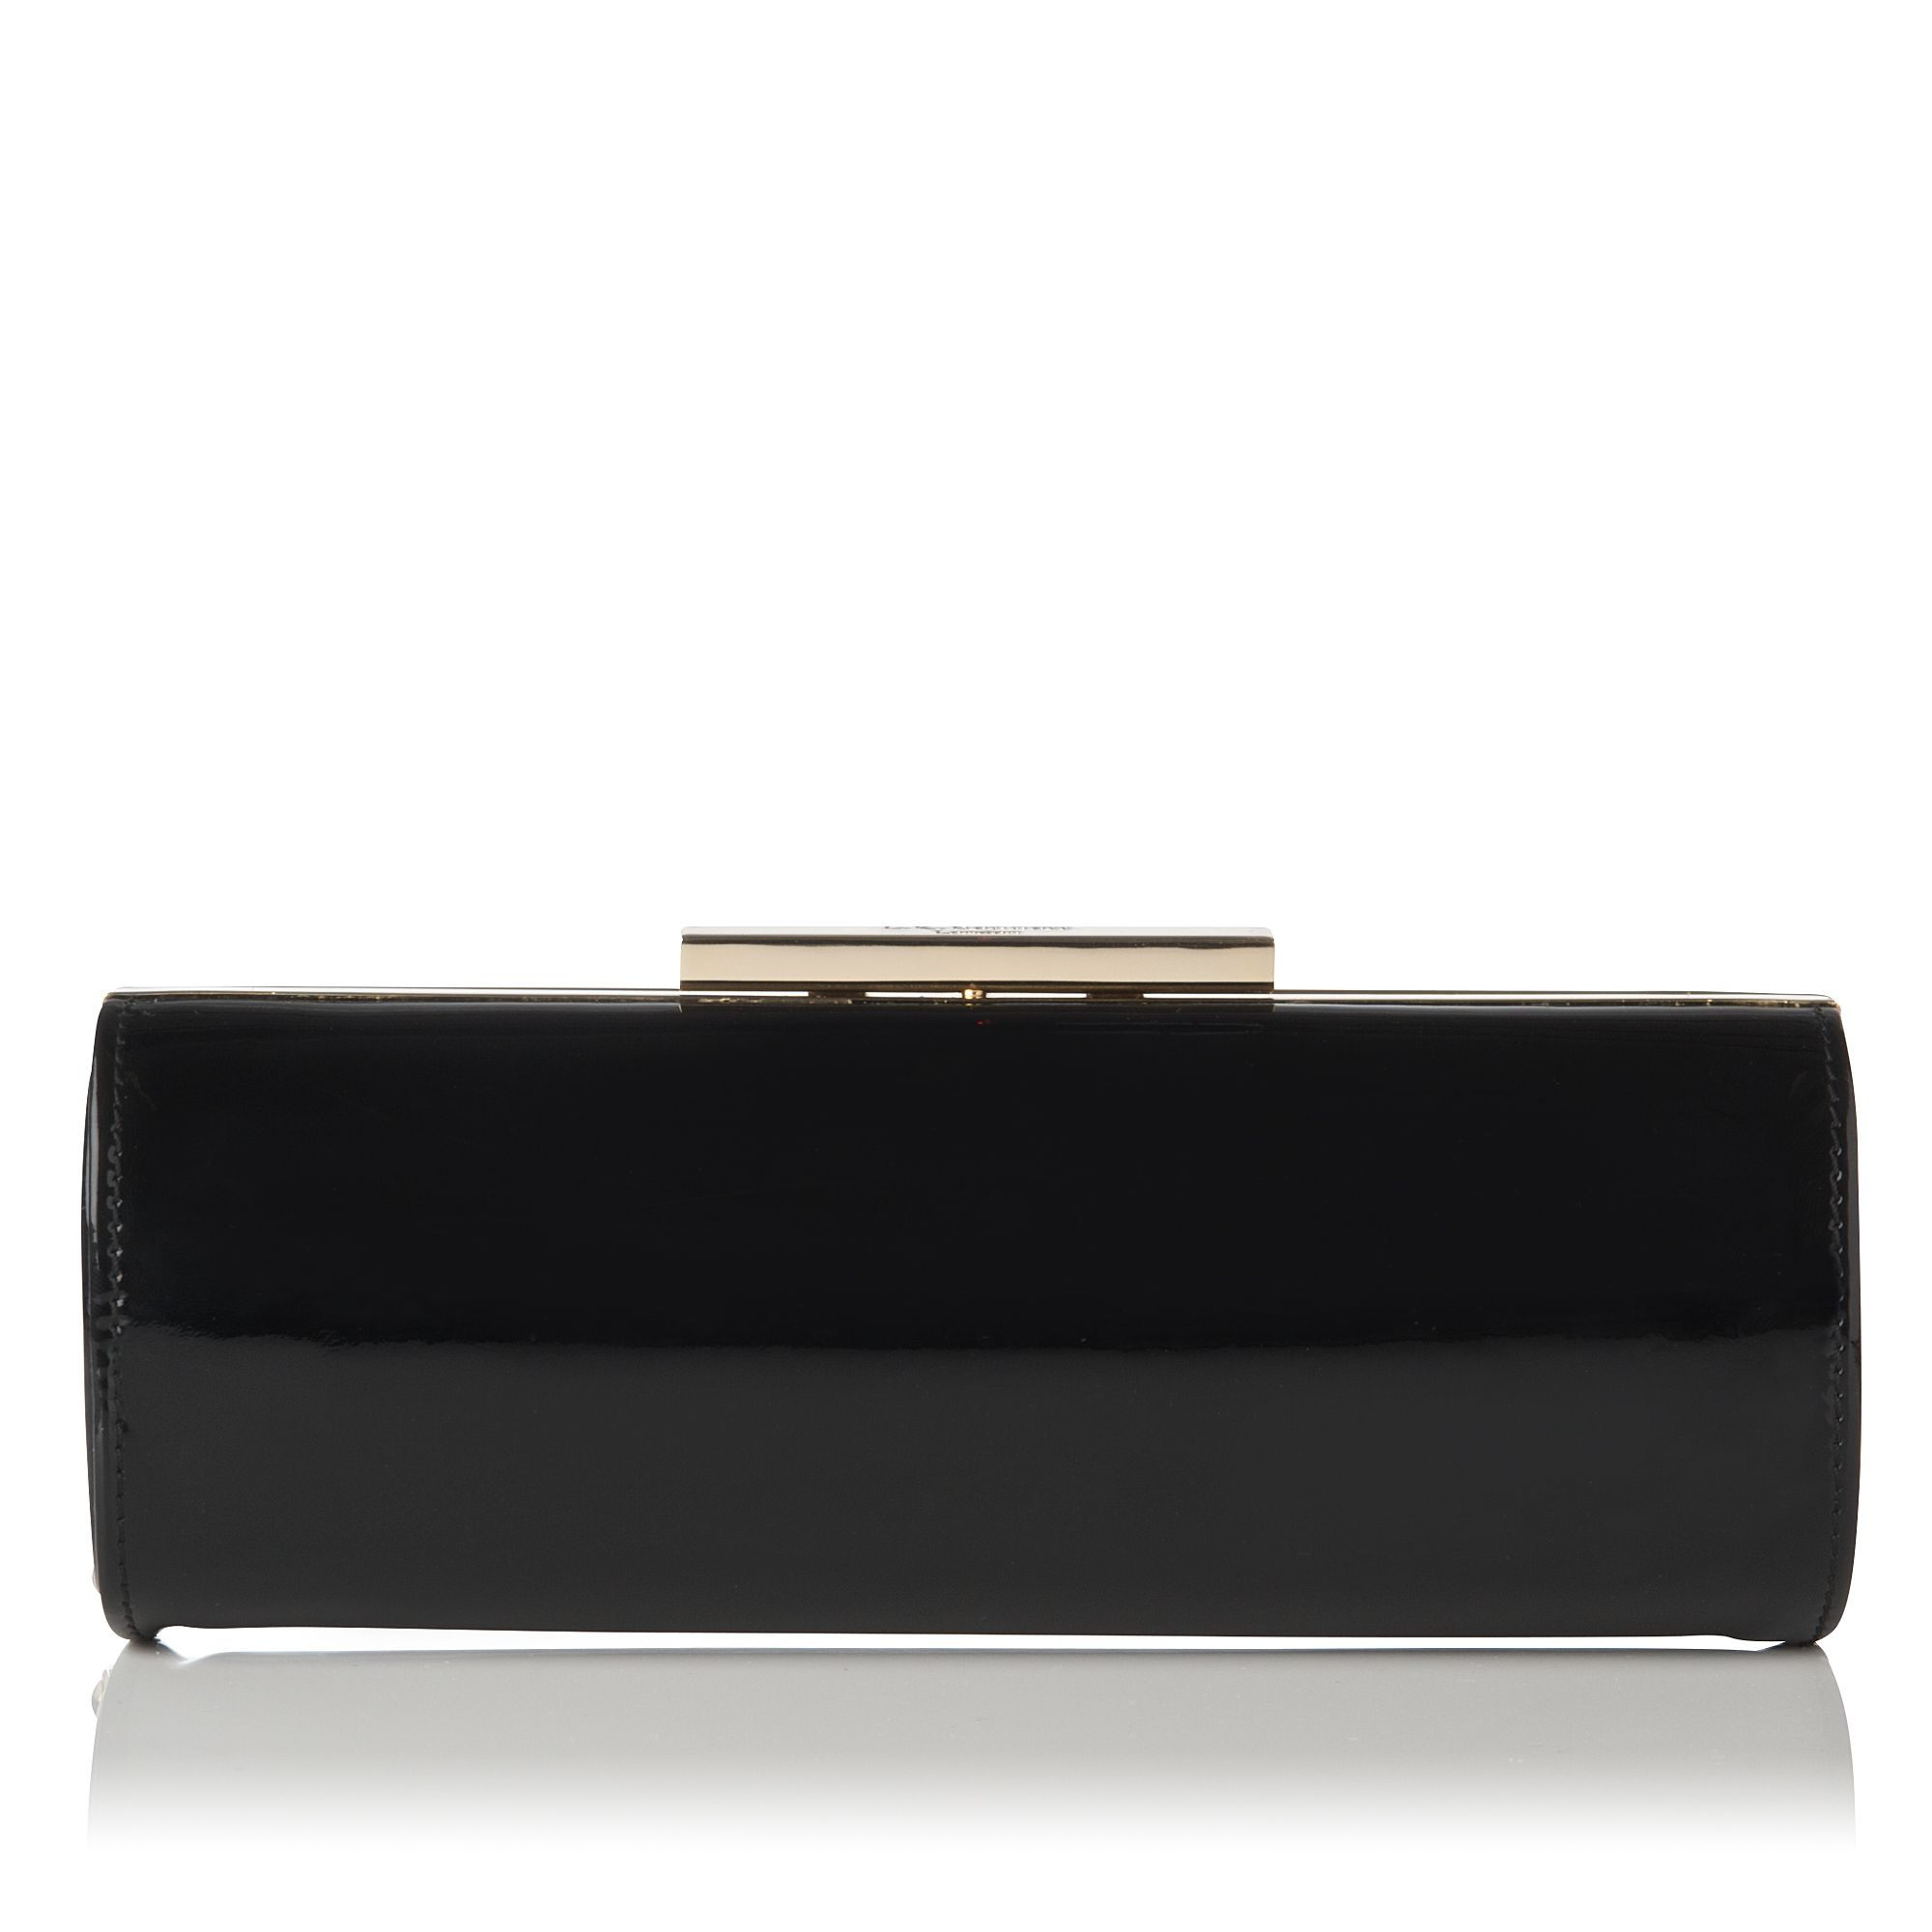 Avona black patent long roll clutch bag